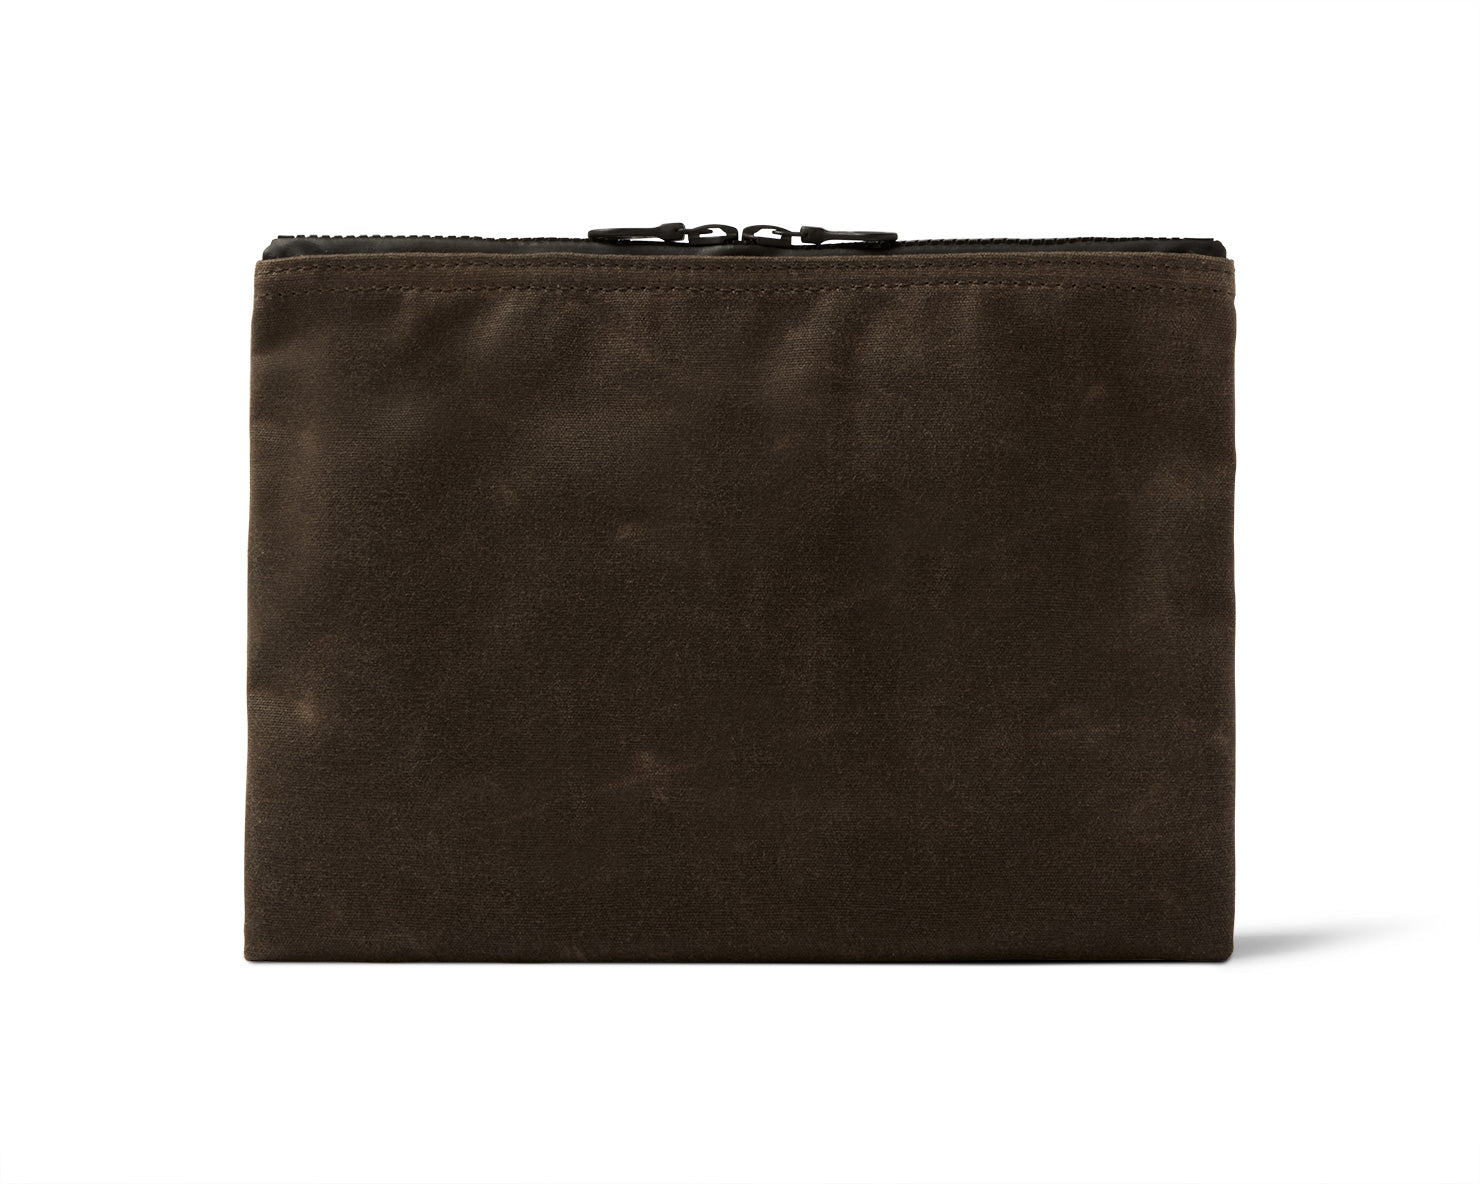 MEDIUM ZIPPERED POUCH | KILLSPENCER®  - Brown Waxed Canvas